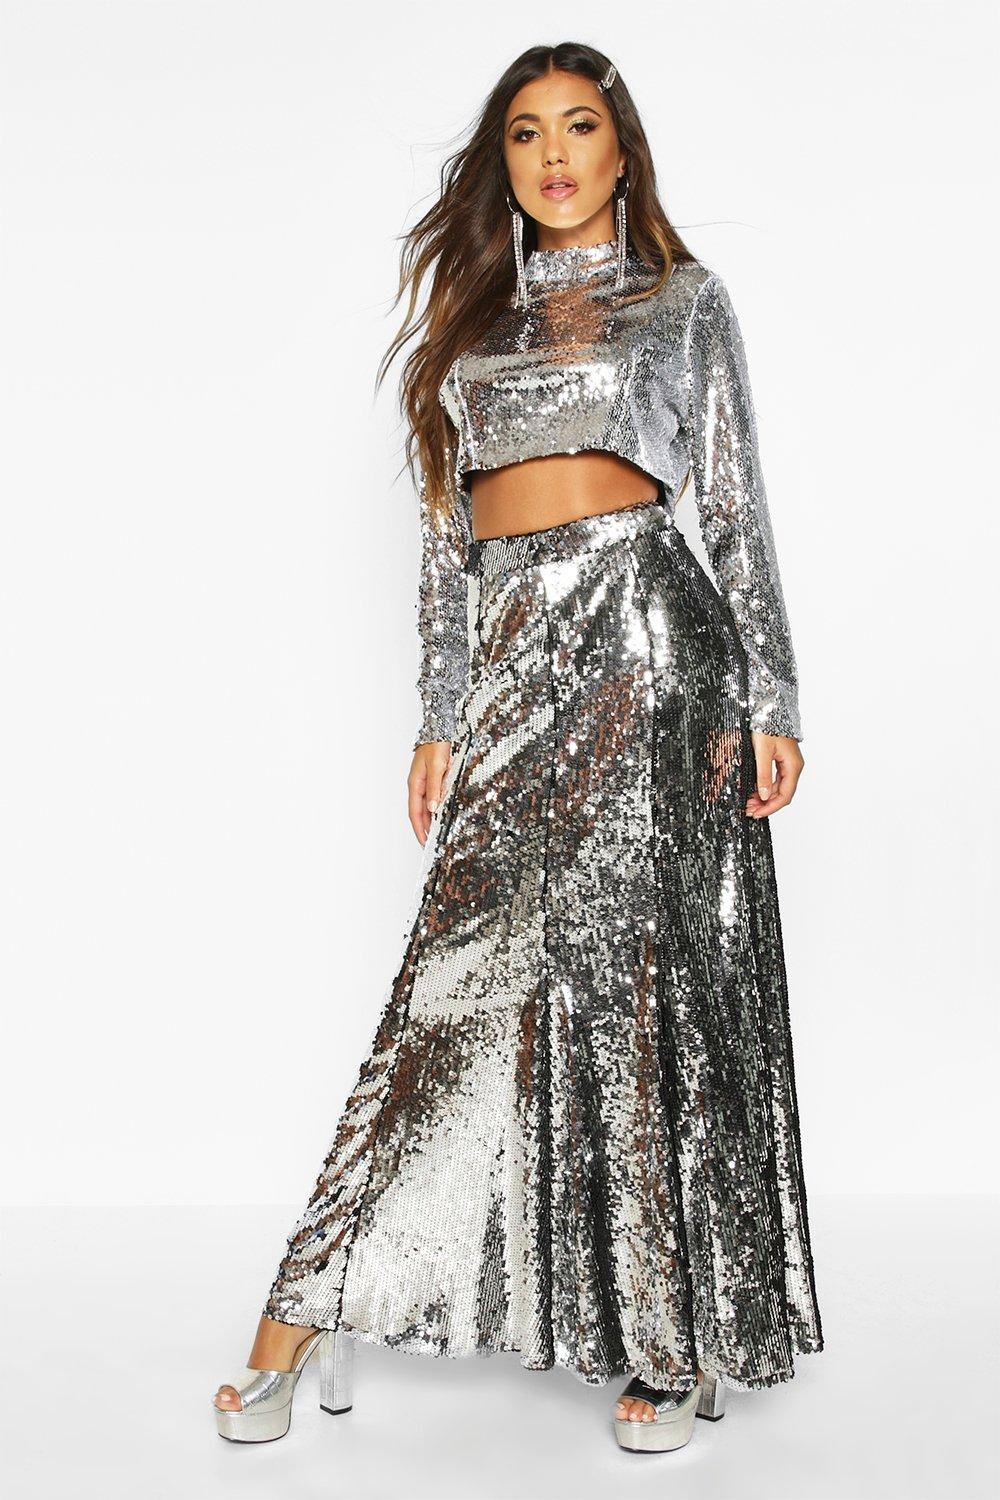 buy cheap silver skirt compare s dresses skirts